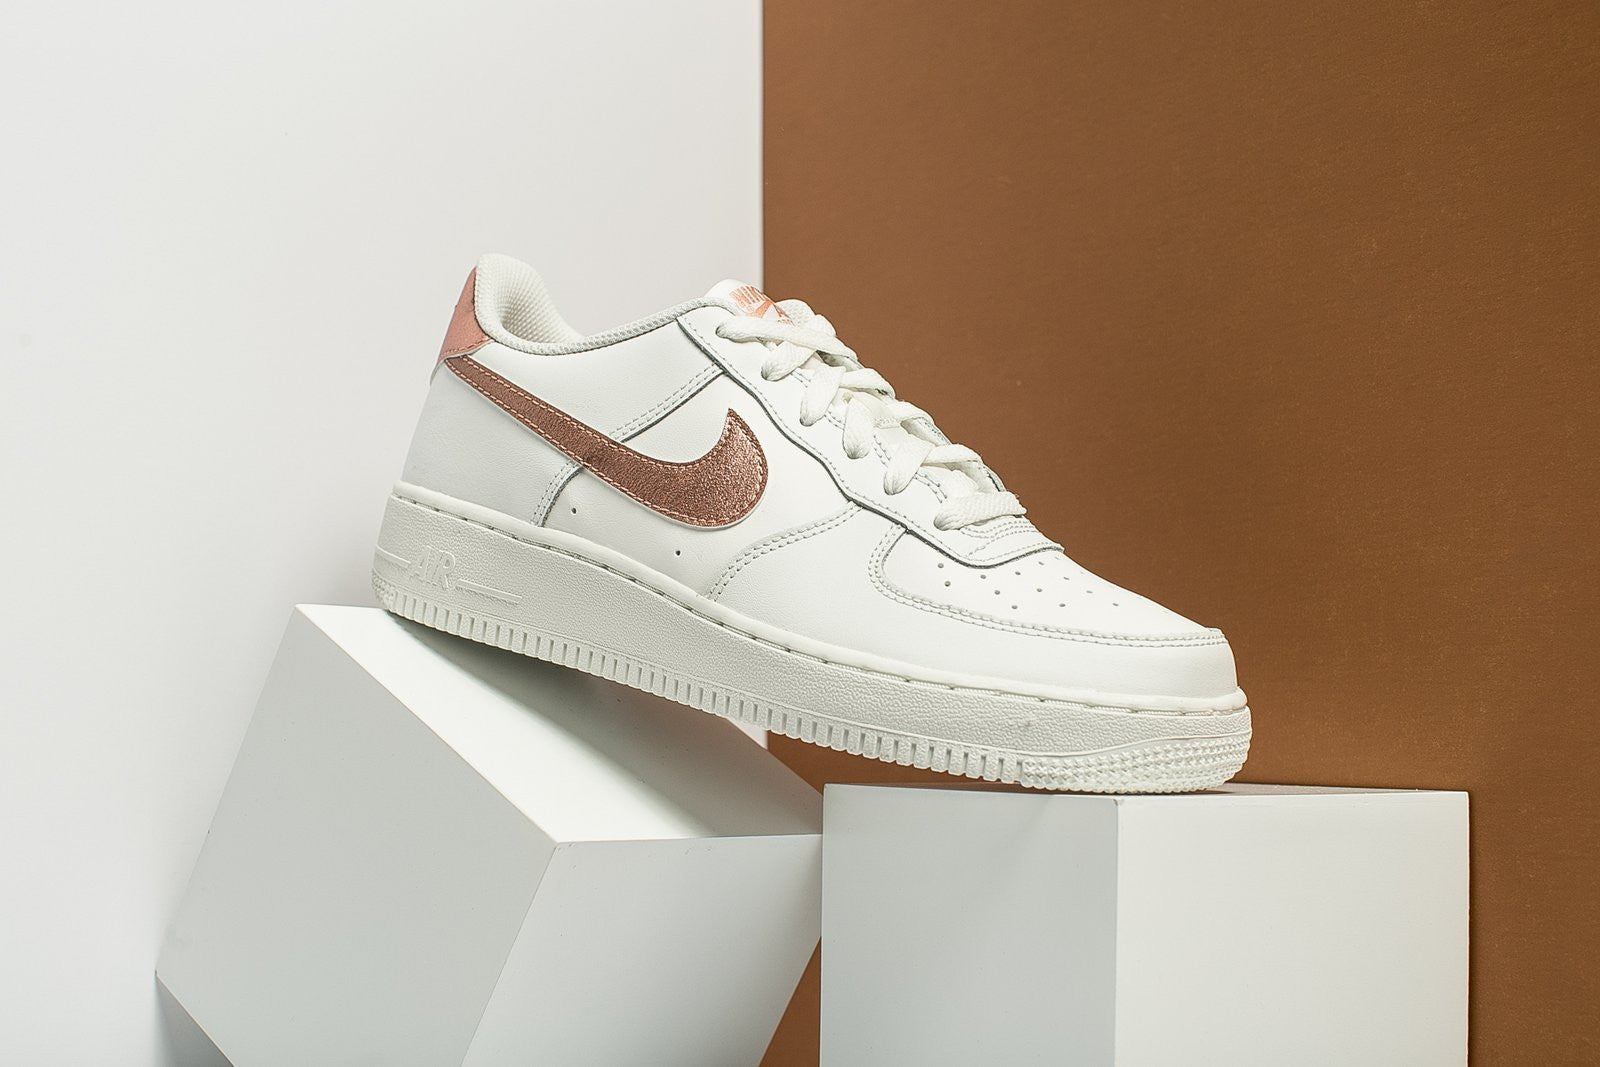 les ventes chaudes 84ed2 8e4d3 Nike Air Force 1 Low